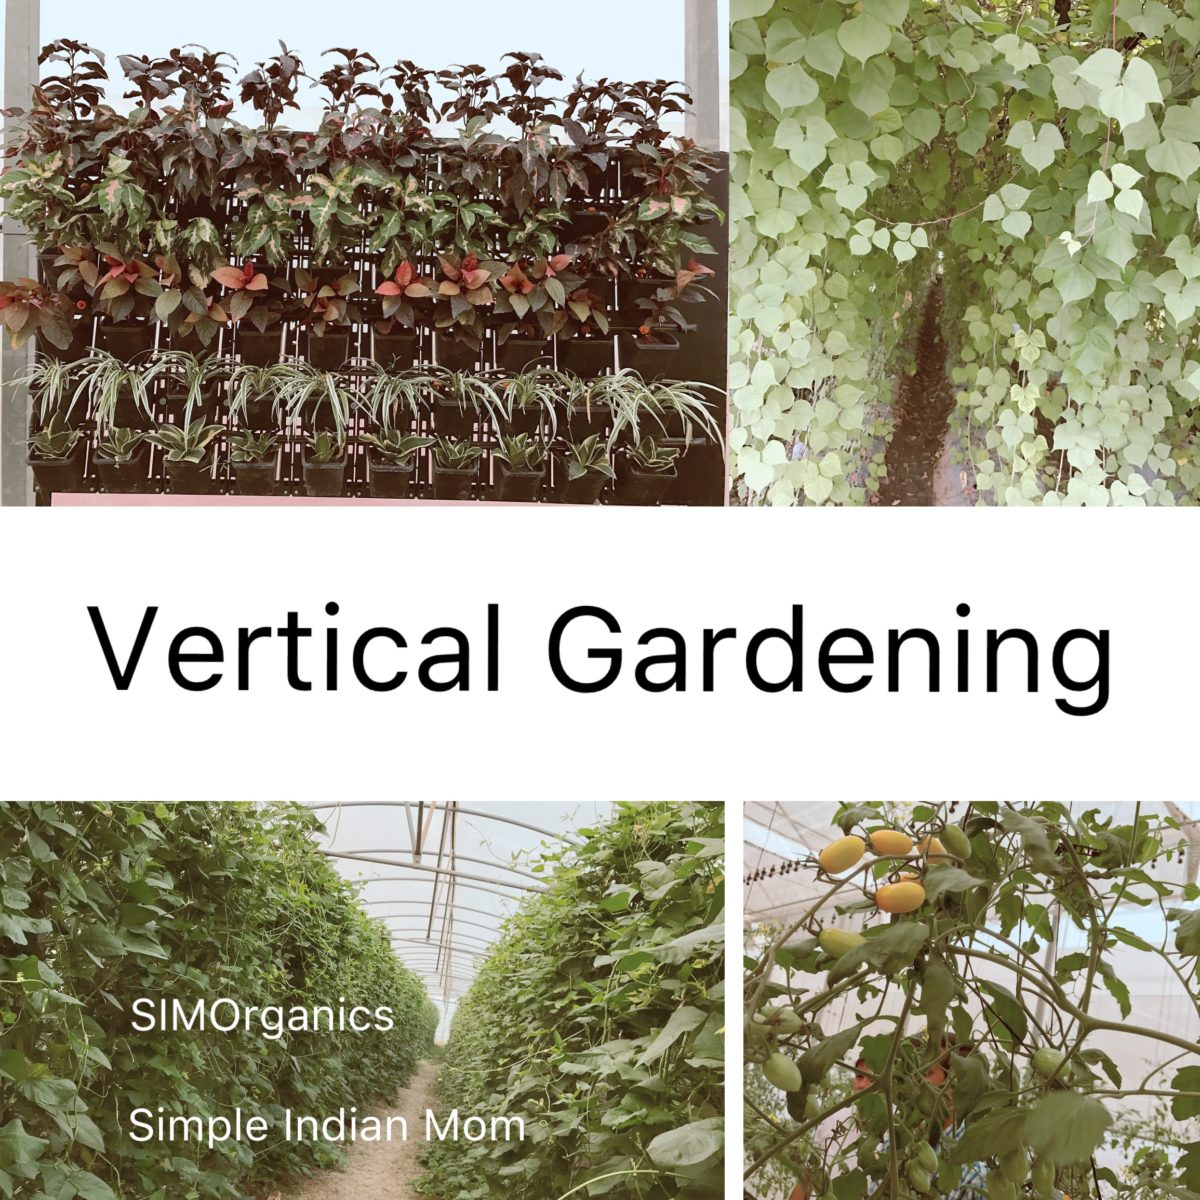 Vertical Gardening – Basics Rules You Should Know To Use Vertical Spaces